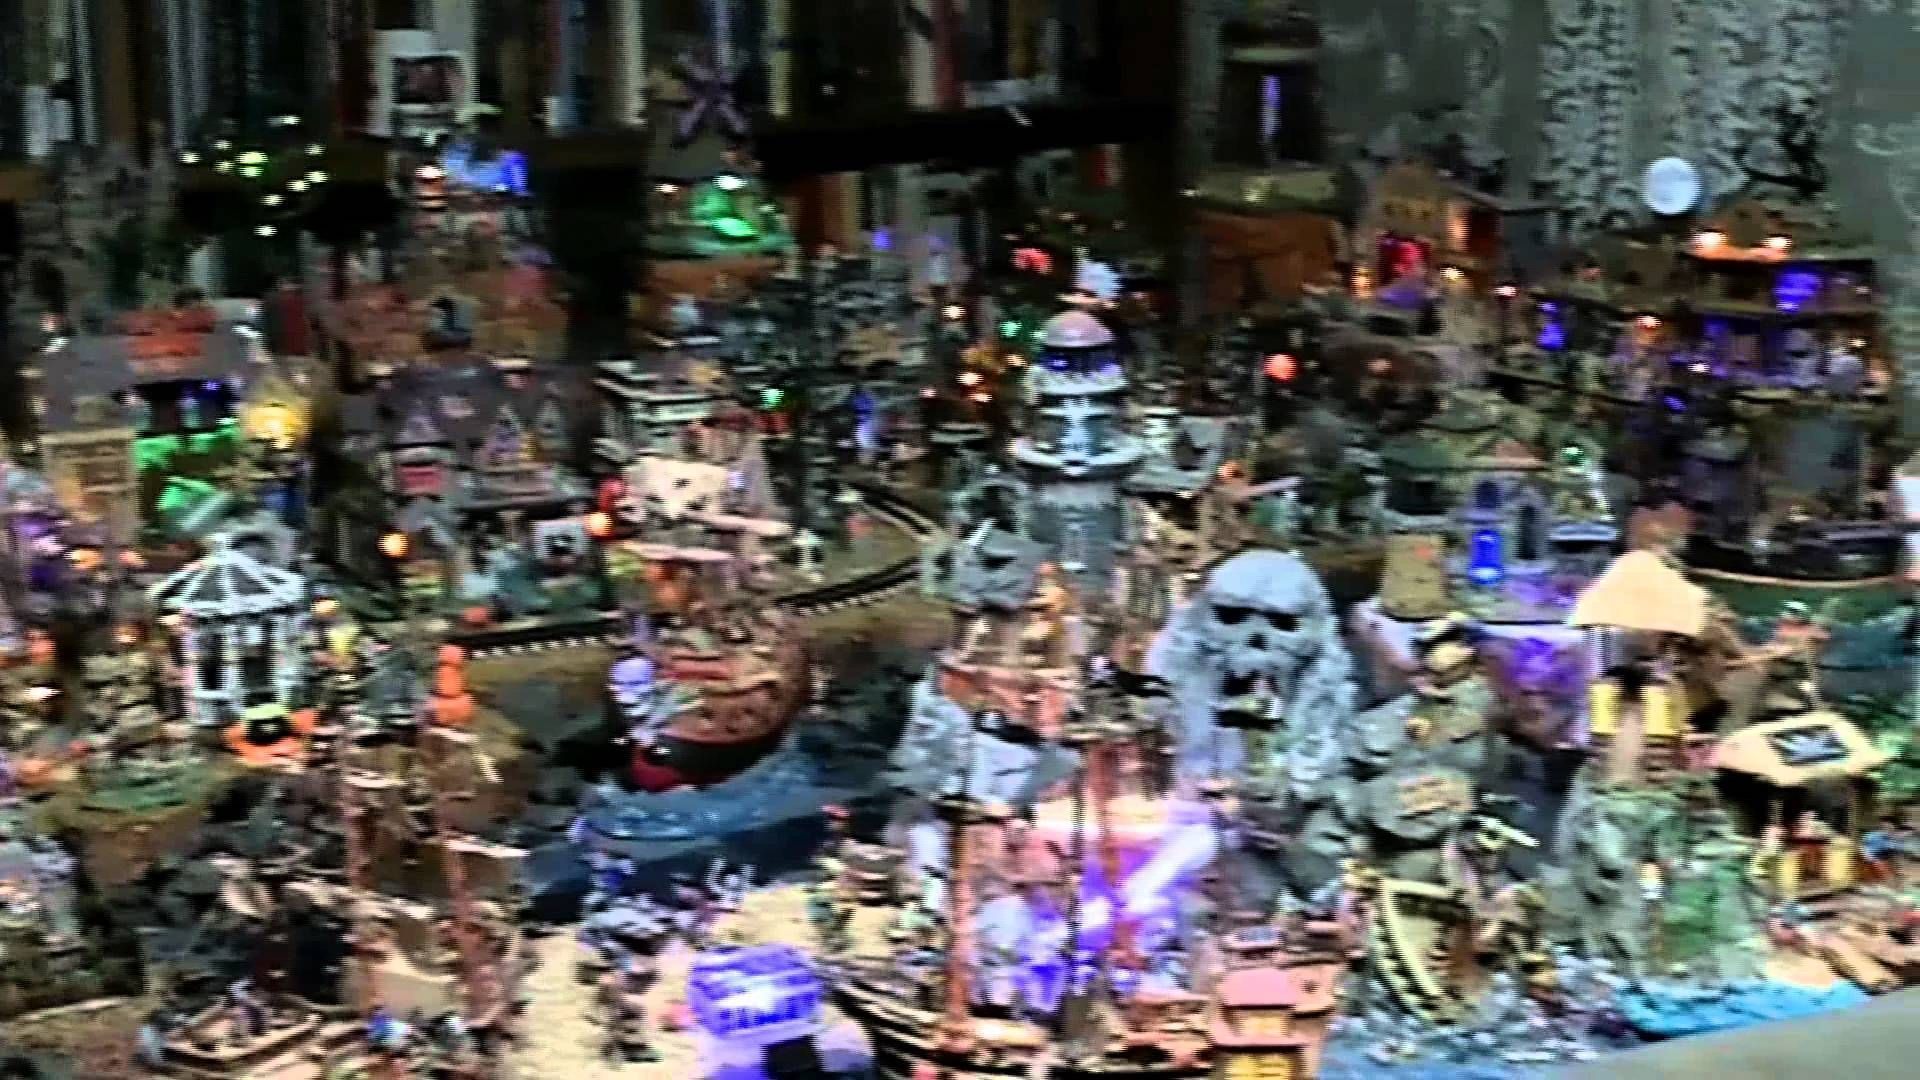 Crazy Halloween Village Display posted on YouTube by lastdual #halloweenvillagedisplay Crazy Halloween Village Display posted on YouTube by lastdual #halloweenvillage Crazy Halloween Village Display posted on YouTube by lastdual #halloweenvillagedisplay Crazy Halloween Village Display posted on YouTube by lastdual #halloweenvillagedisplay Crazy Halloween Village Display posted on YouTube by lastdual #halloweenvillagedisplay Crazy Halloween Village Display posted on YouTube by lastdual #halloween